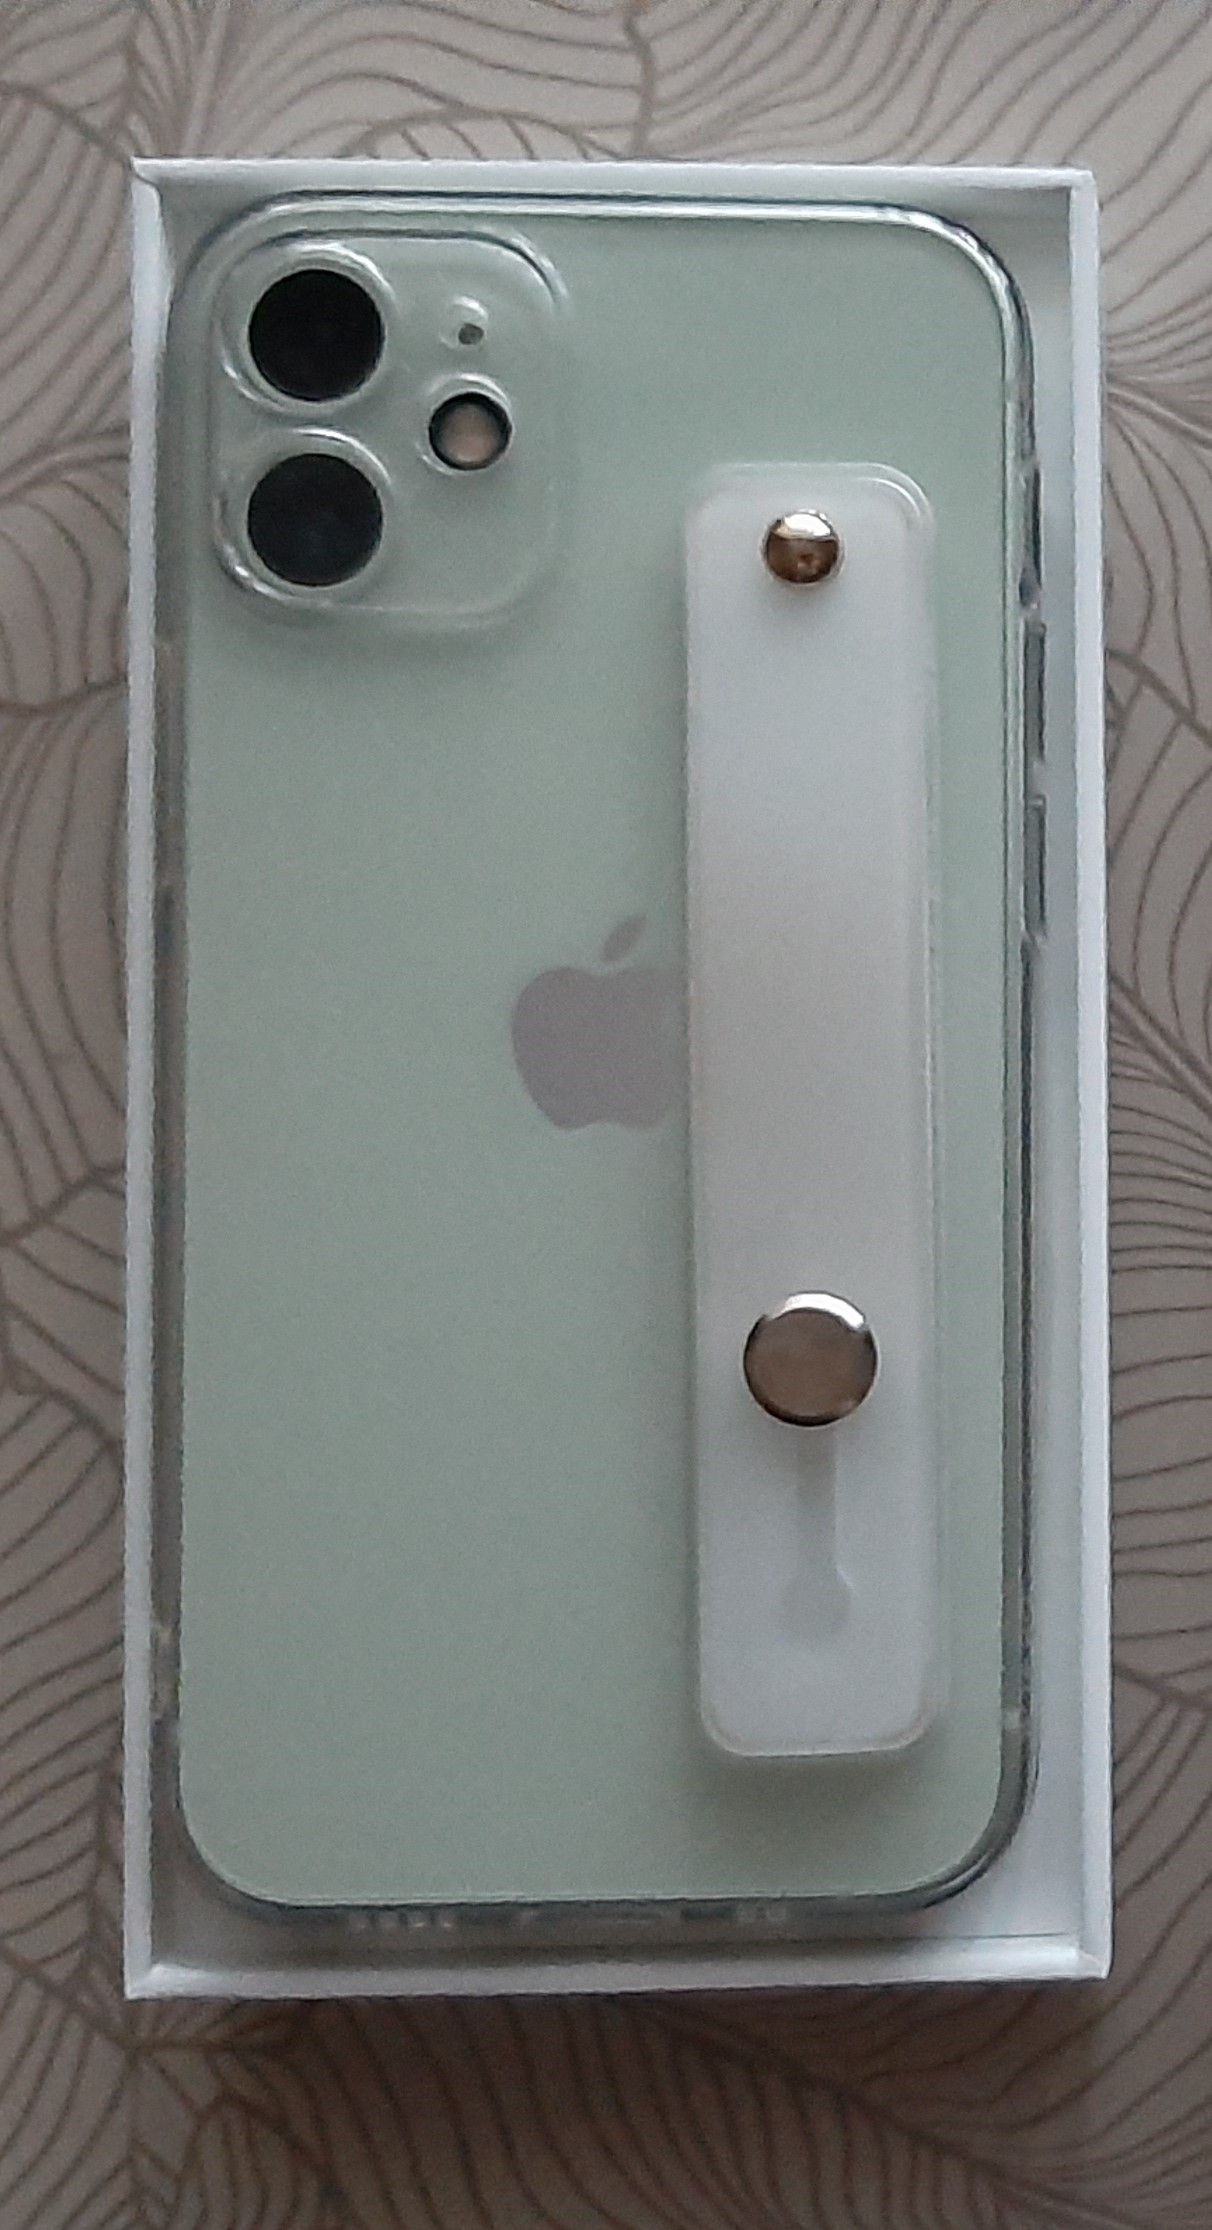 Обзор смартфона Apple iPhone 12 mini 128GB Green (MGE73RU/A)